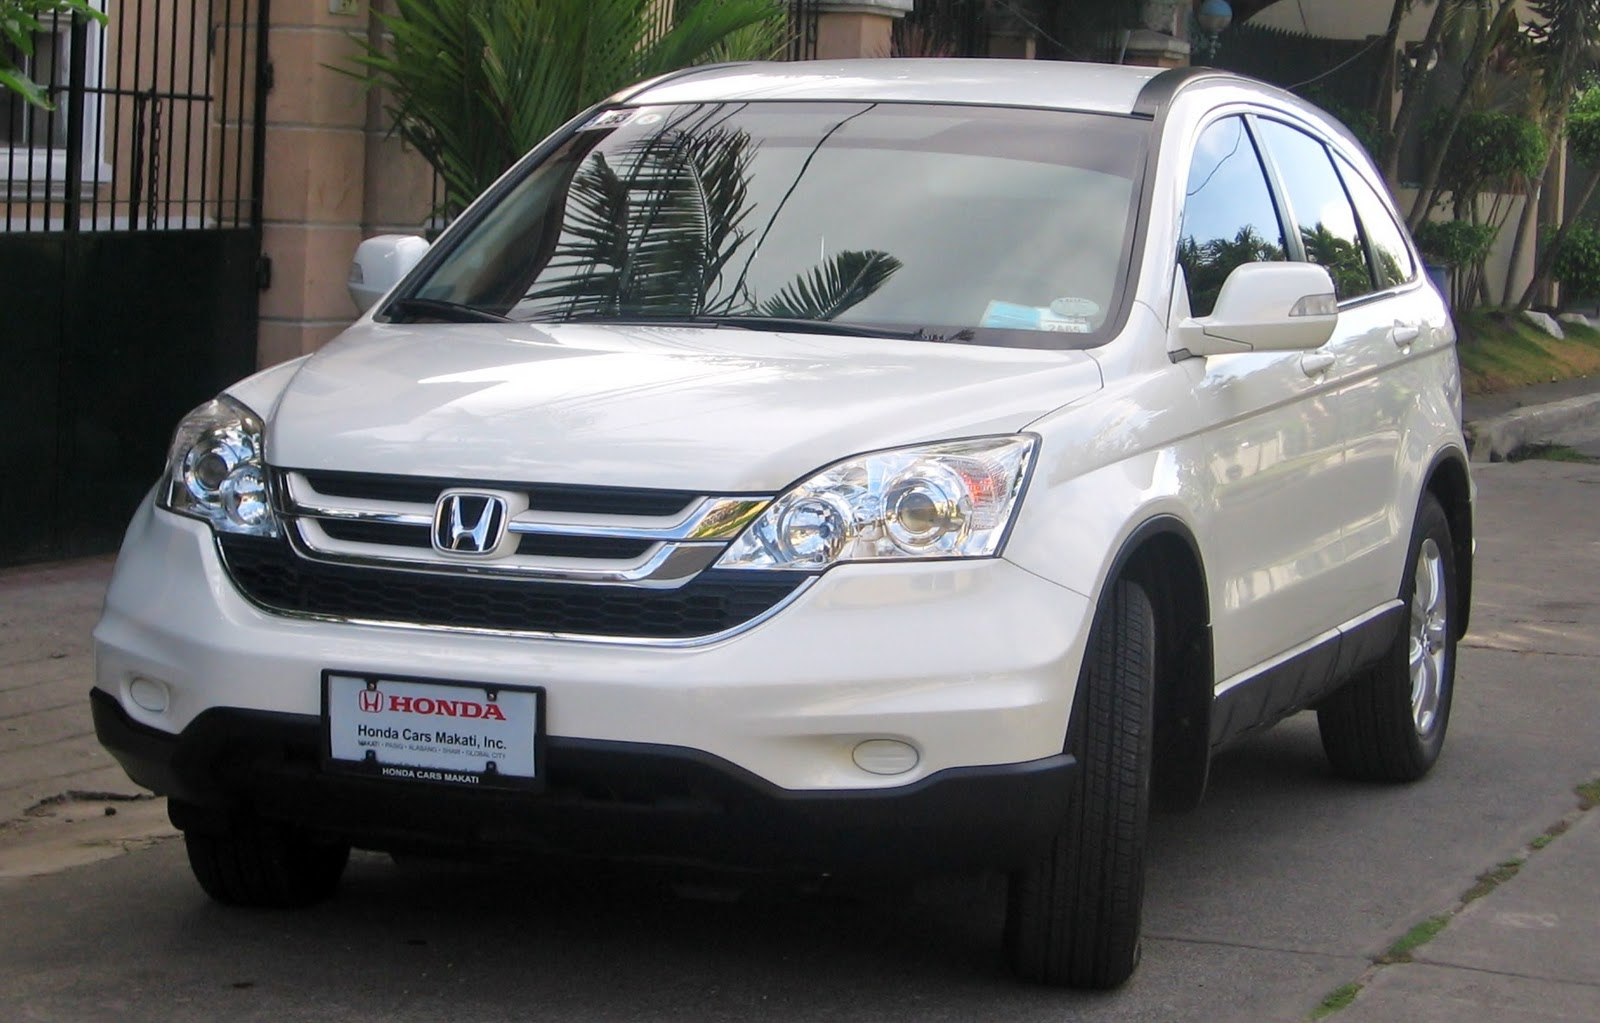 New Cars Design: Honda CRV Cars Smoother Exterior Styling